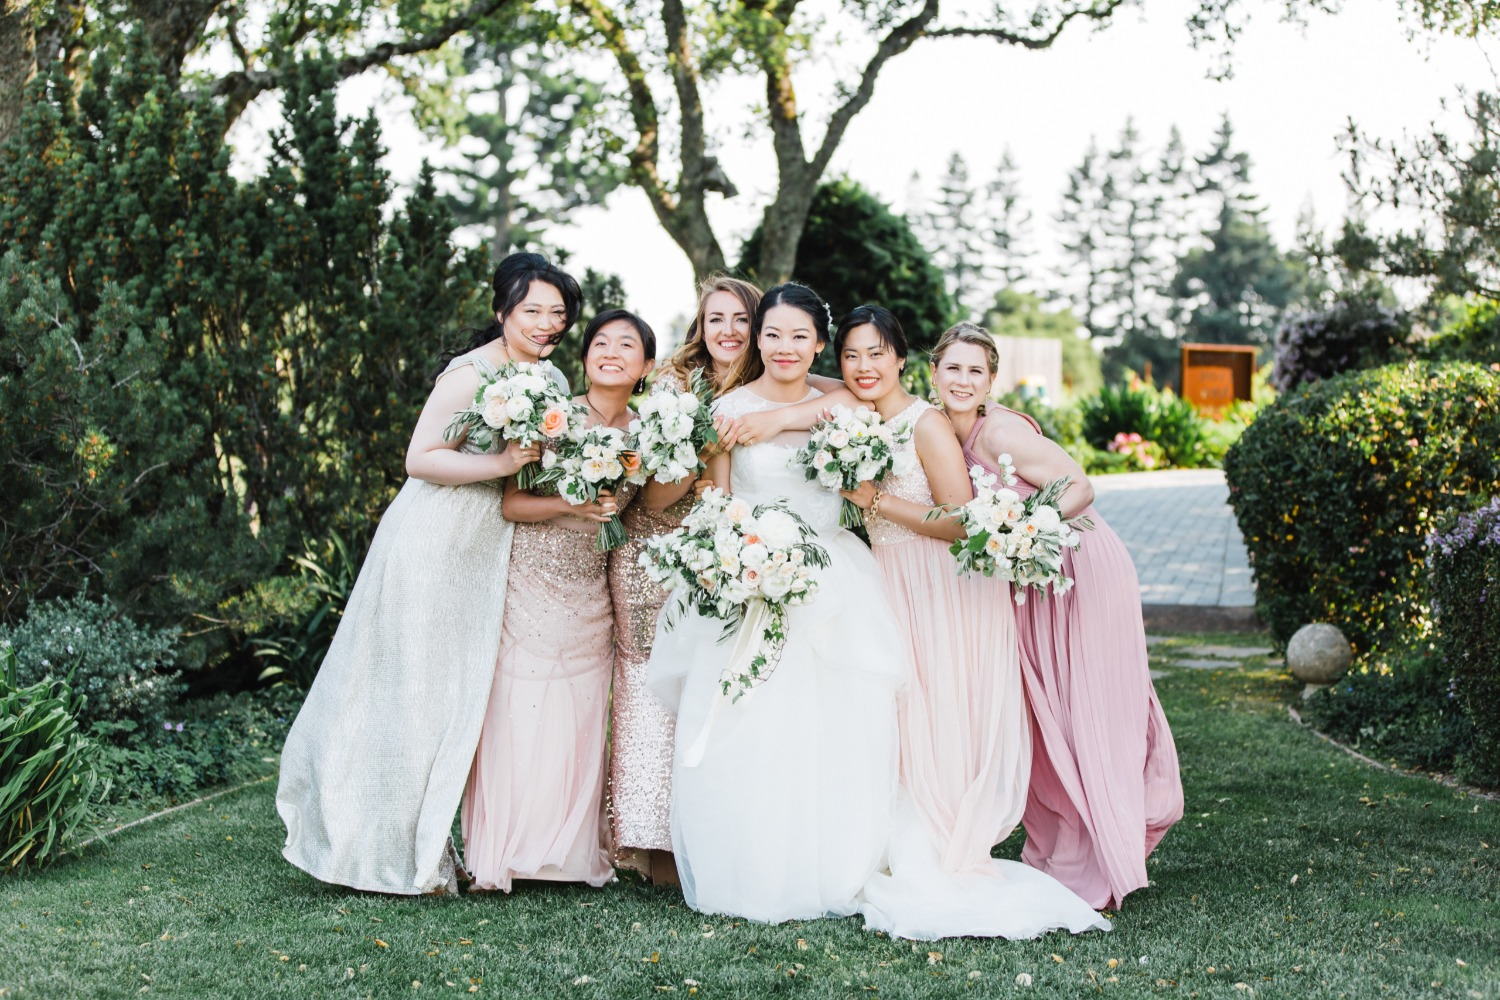 blush mismatched bridesmaids dresses